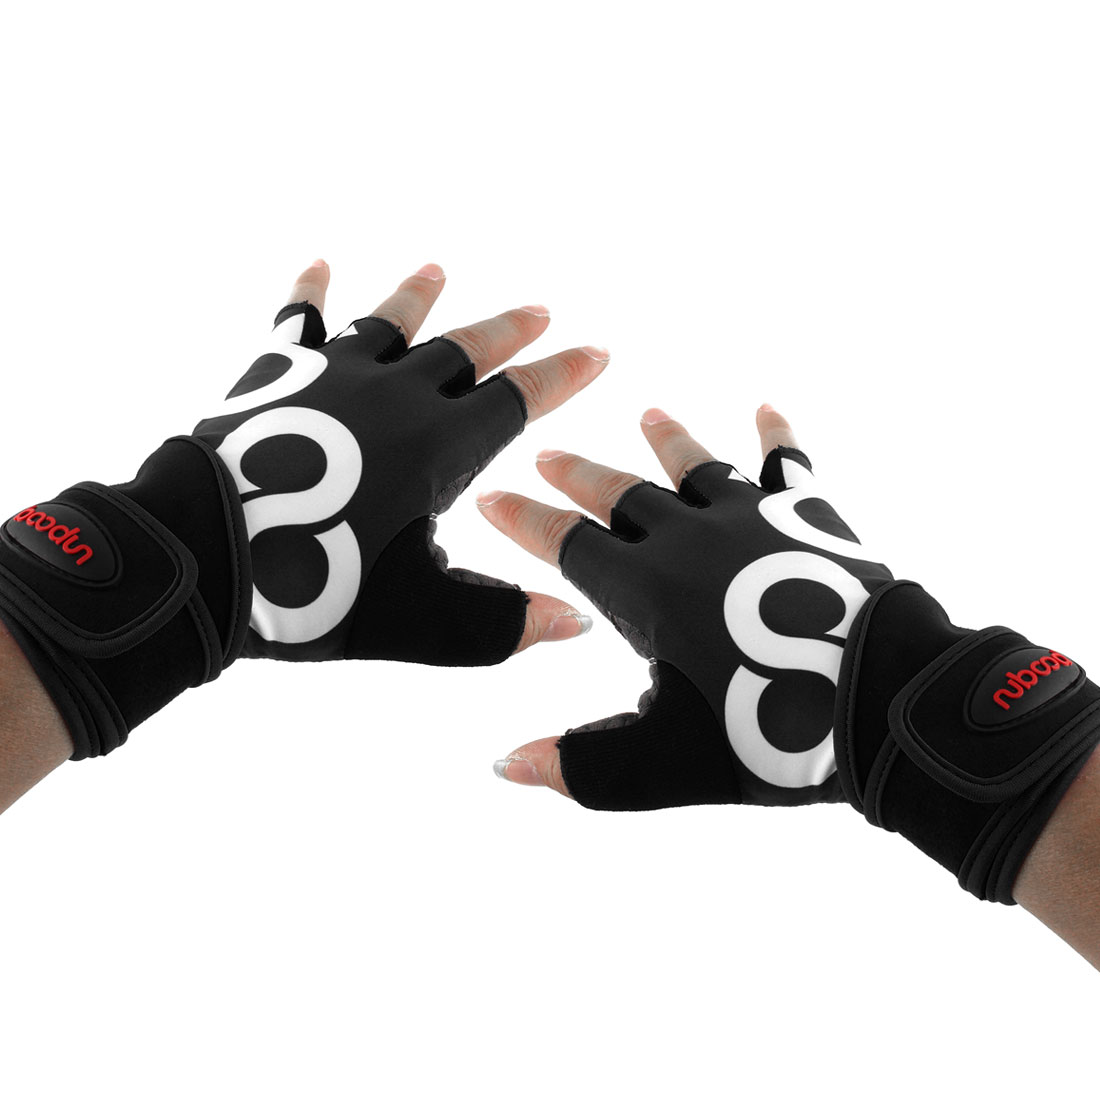 BOODUN Authorized Men Polyester Exercise Sports Weightlifting Training Workout Half Finger Fitness Gloves Black S Pair